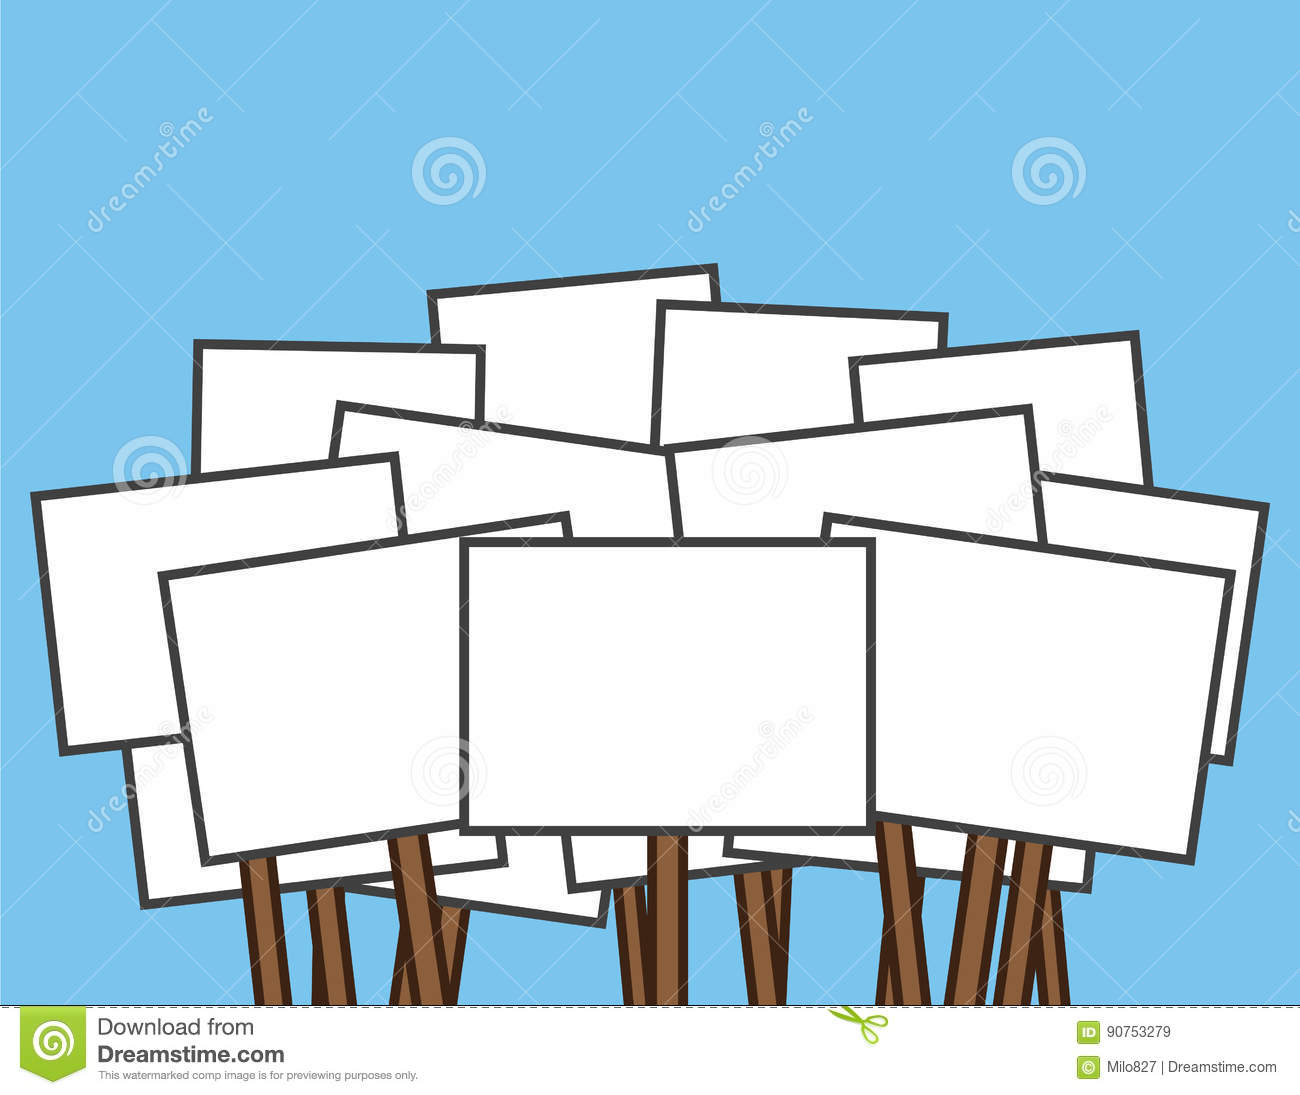 Protest sign clipart 3 » Clipart Station.